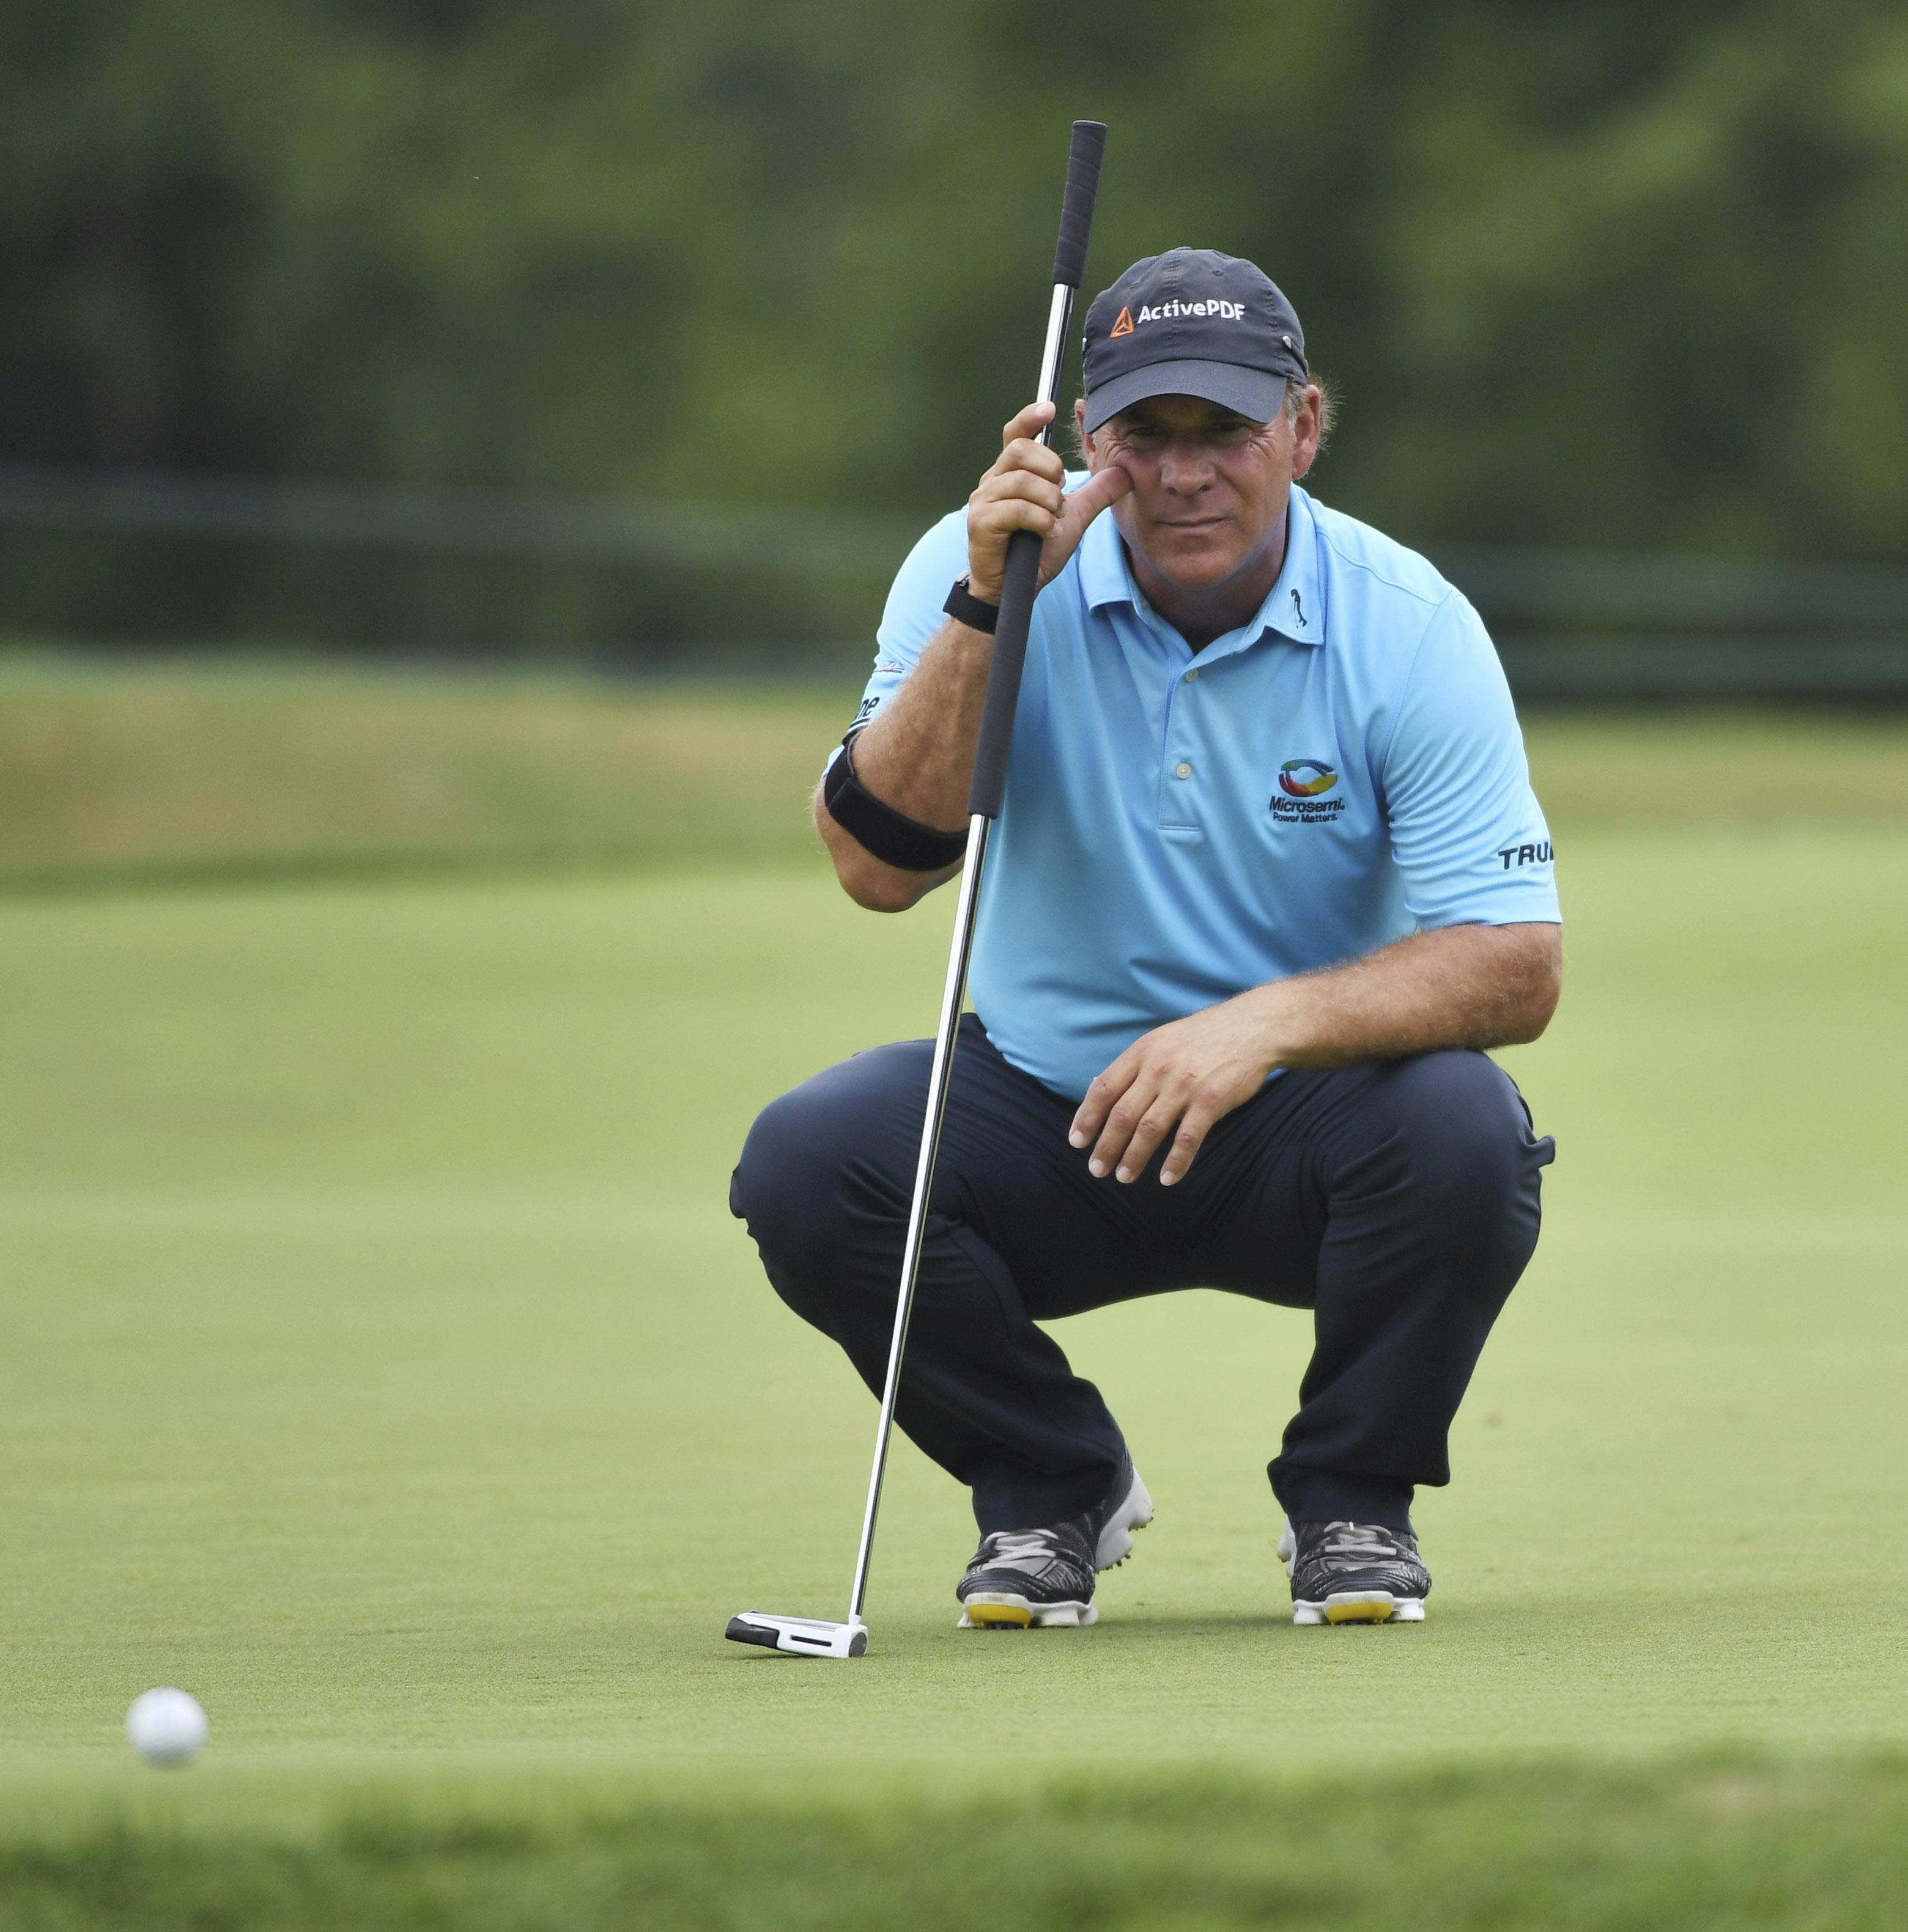 Scott McCarron, Jeff Maggert, Bart Bryant tied for lead at Senior ...